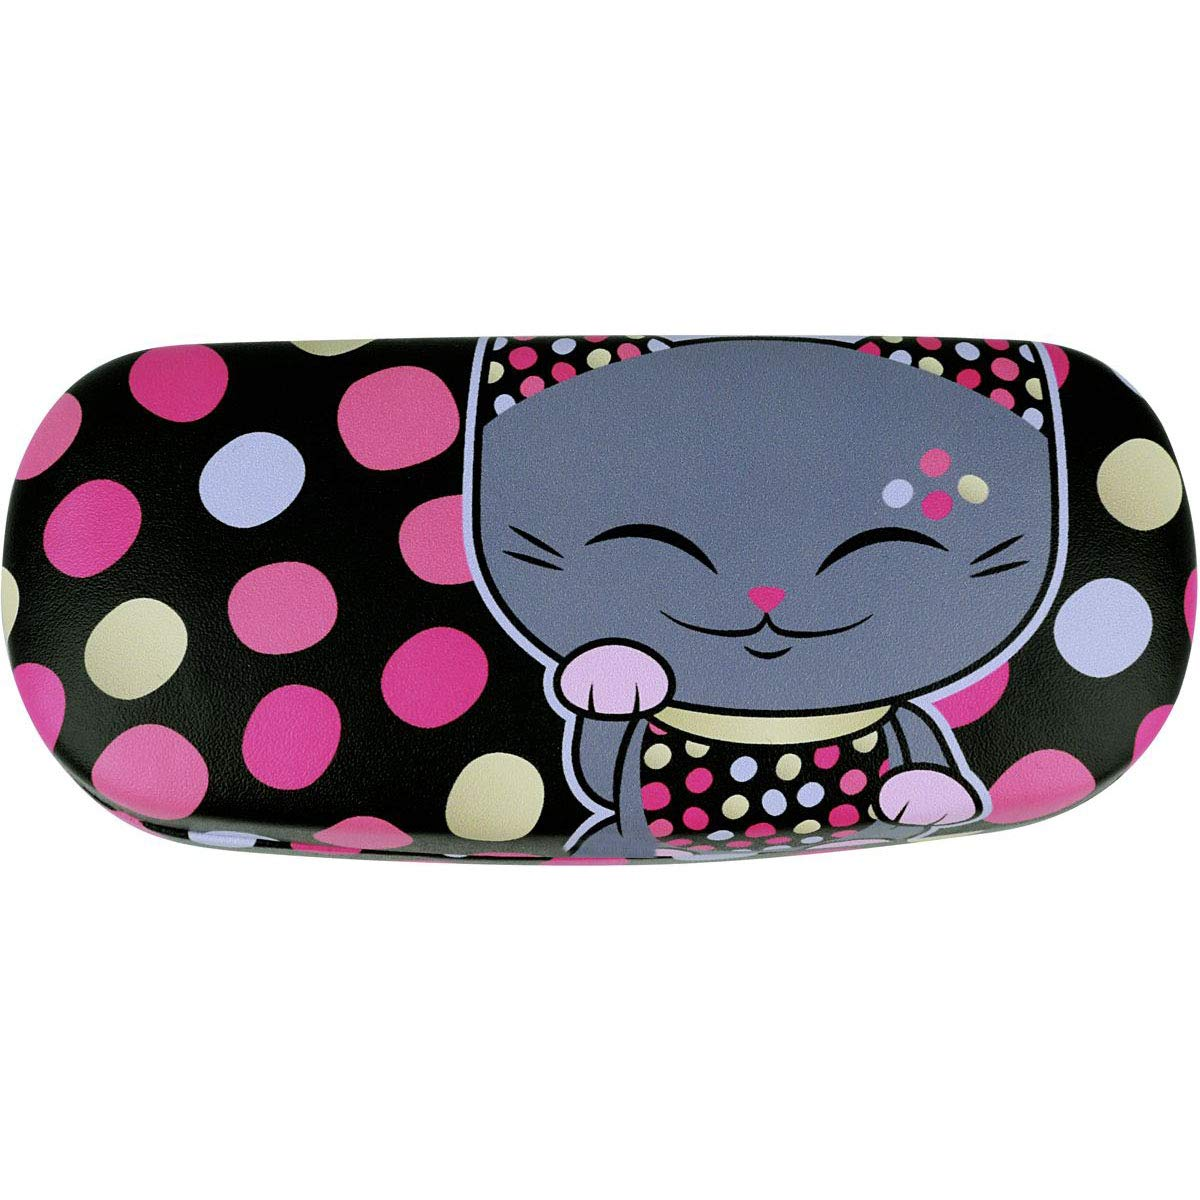 Handmade Russian Glasses case for women, on a solid basis, black with color print